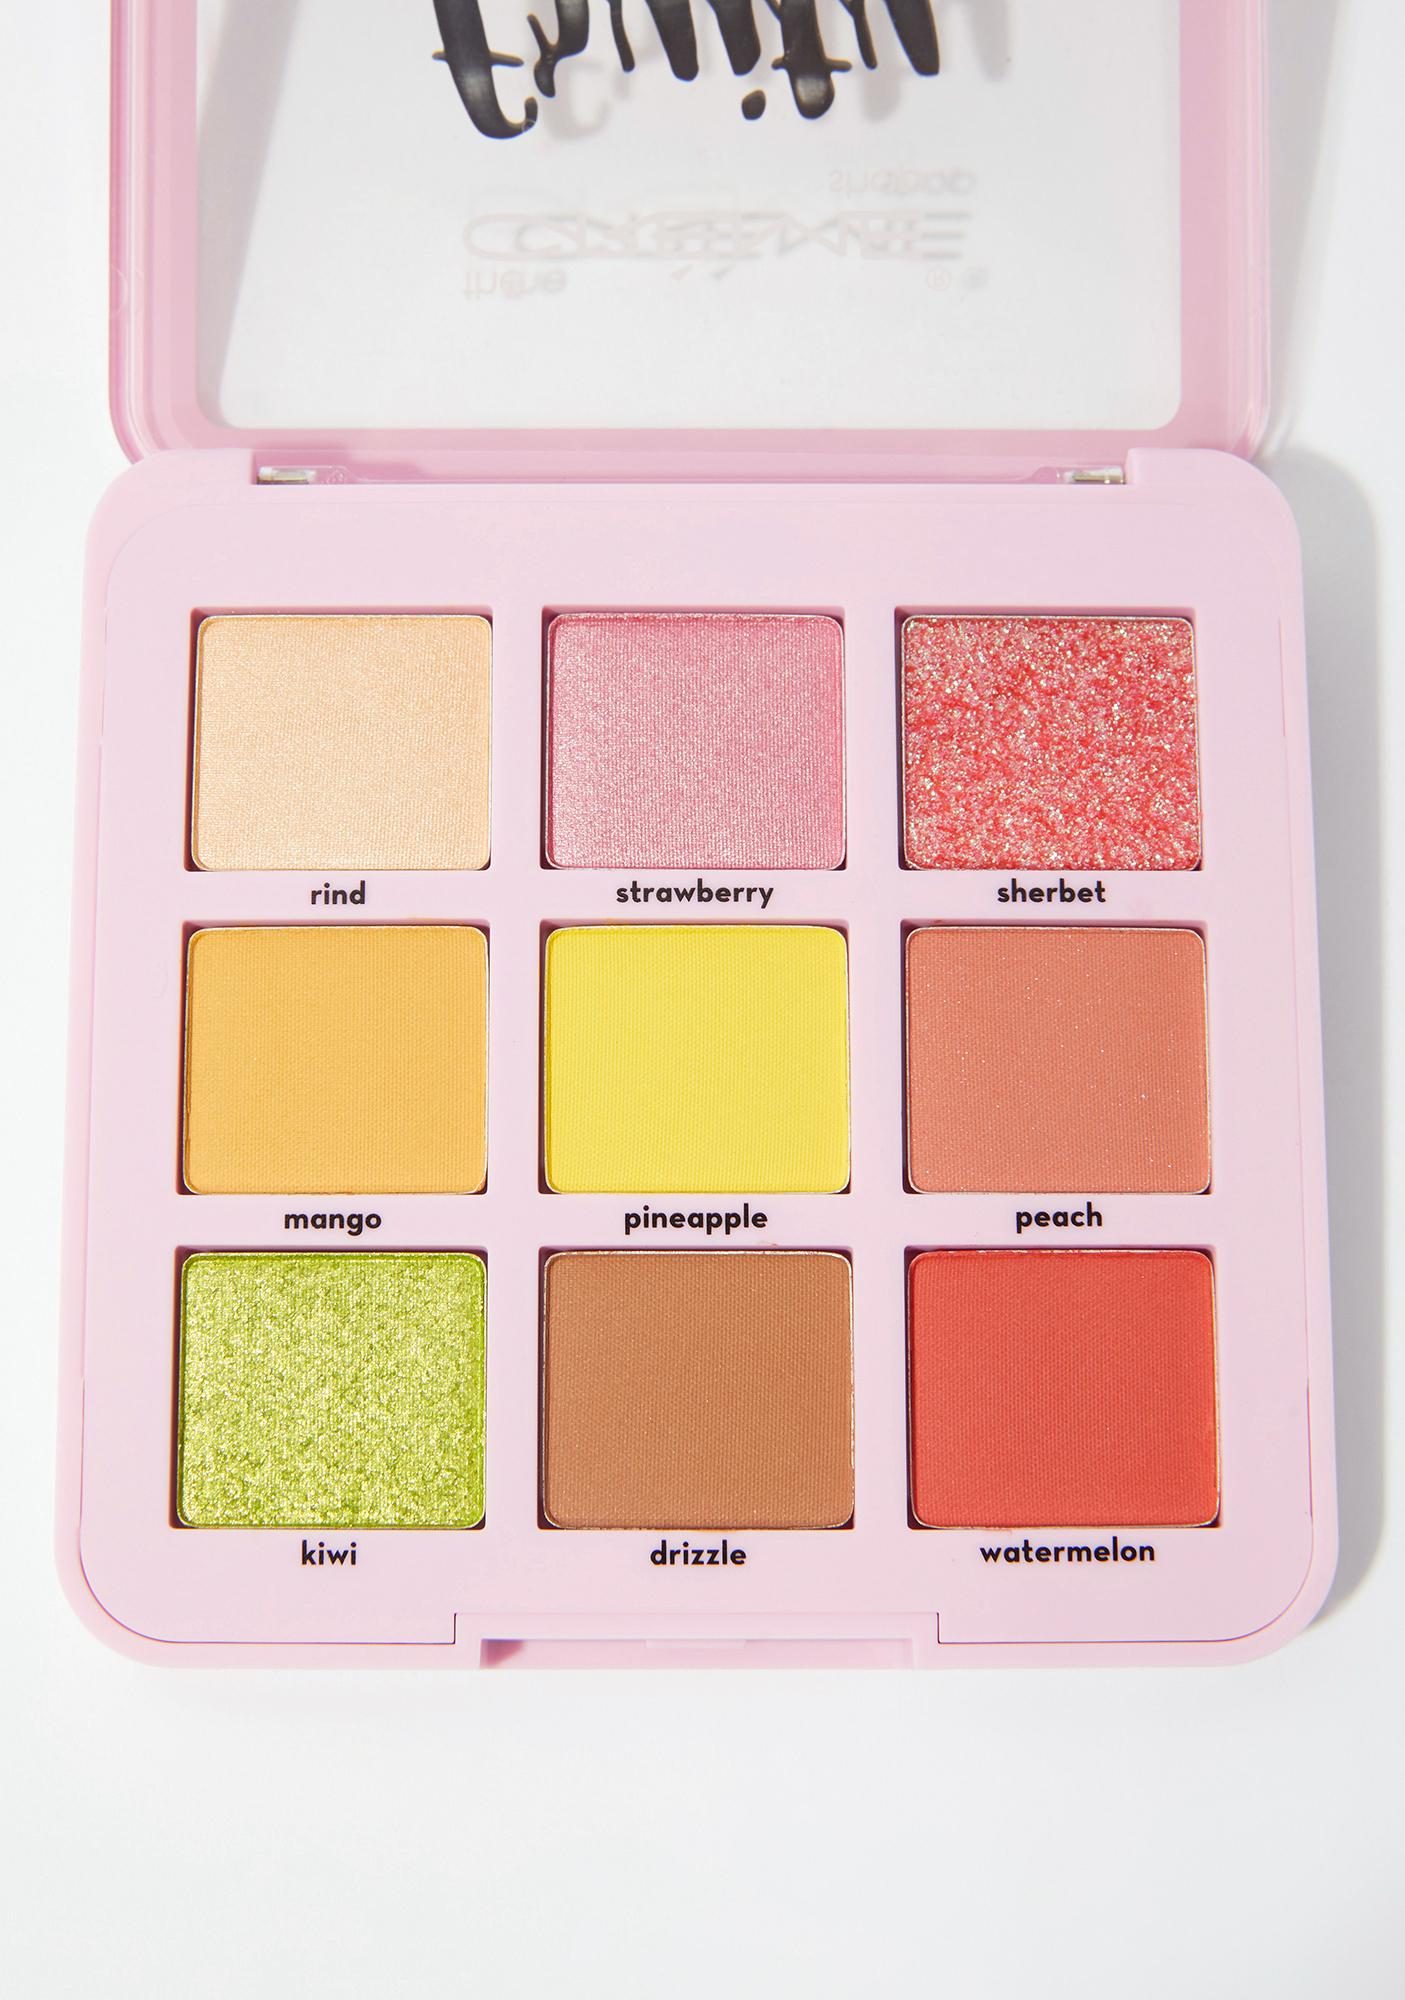 The Crème Shop Fruity Smoothie Eyeshadow Palette